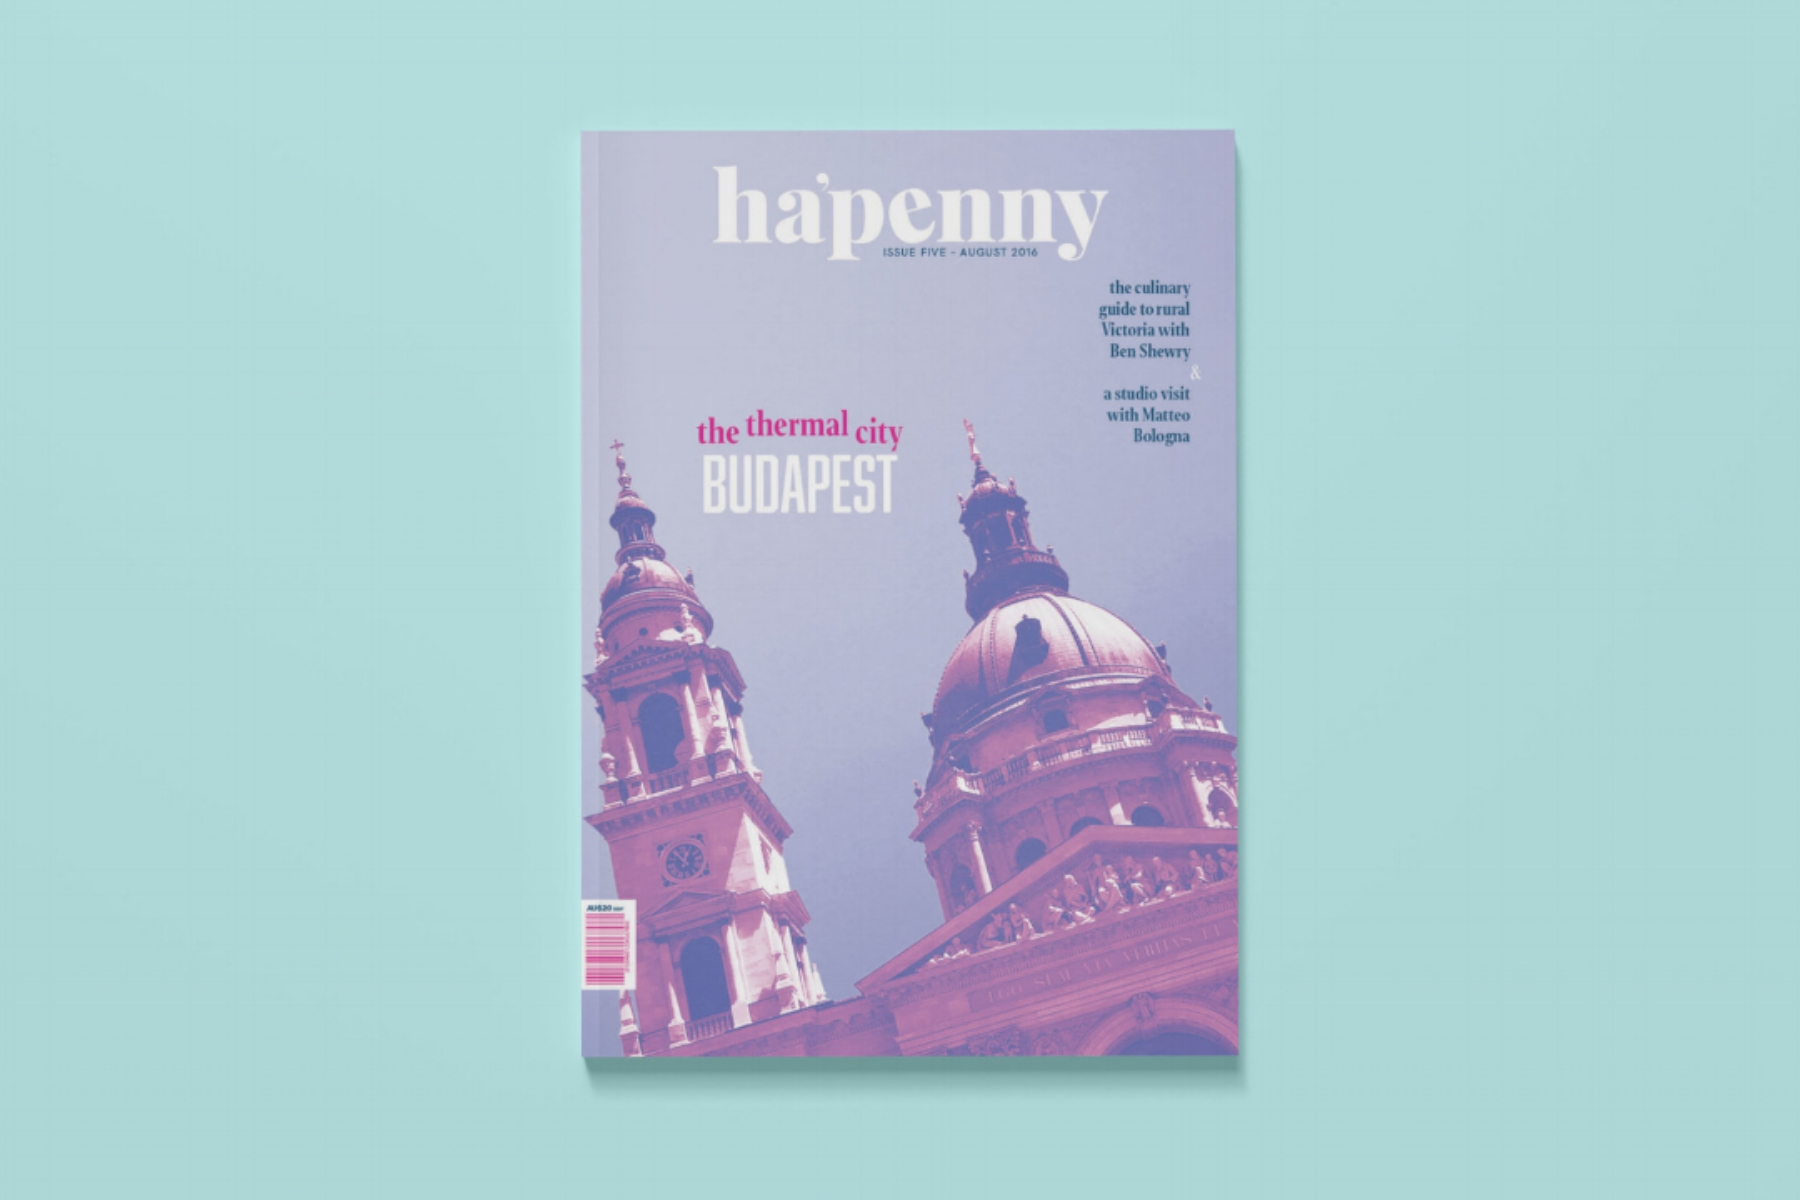 Ha'Penney   is a travel and lifestyle magazine. This particular issue showcases a feature article on Budapest, including two illustrated maps.